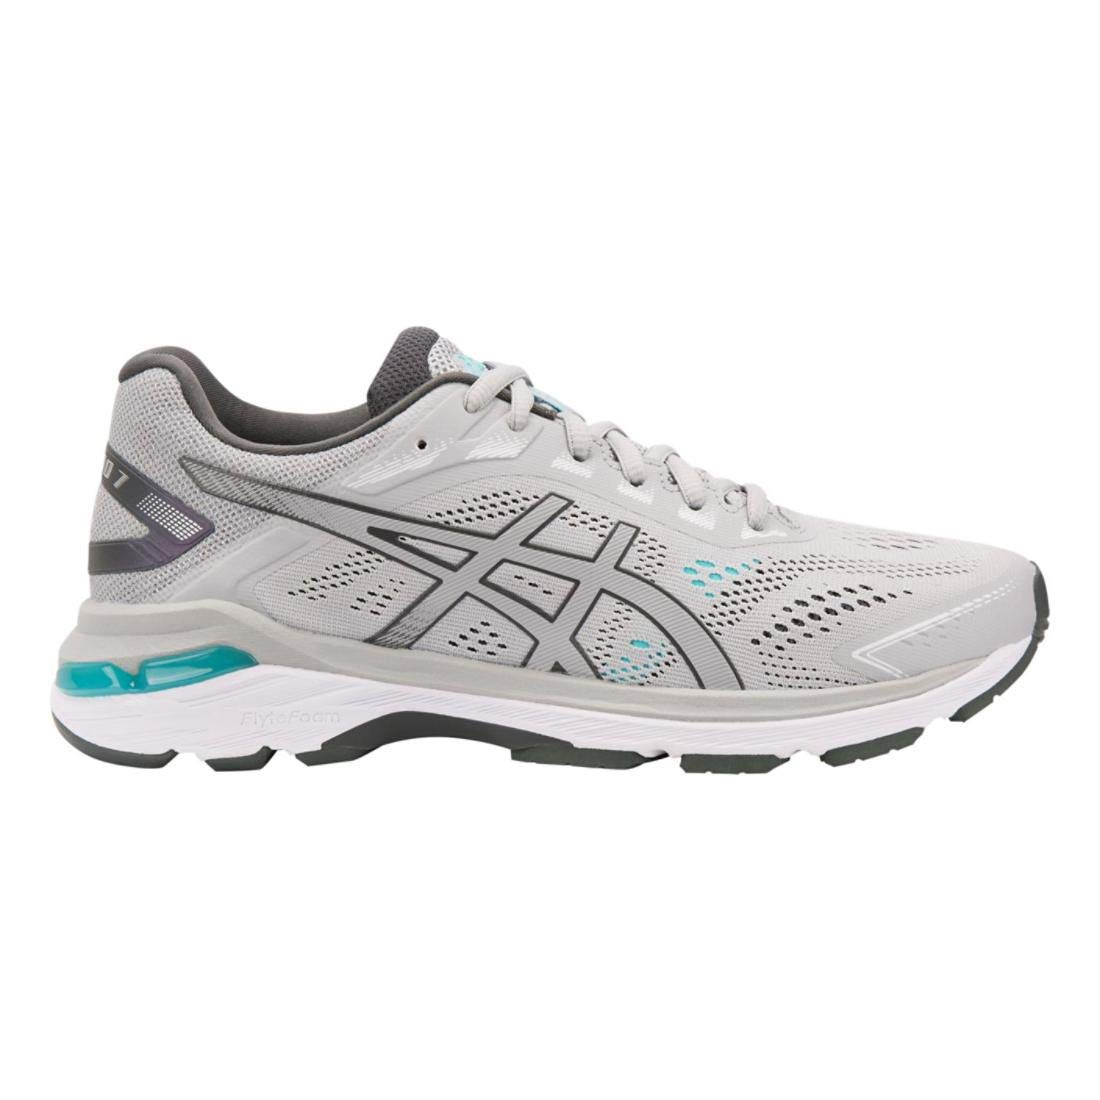 Mid Gelcontend 5m Running Womens Shoes Grey Dark 4 10 Asics CedrBox